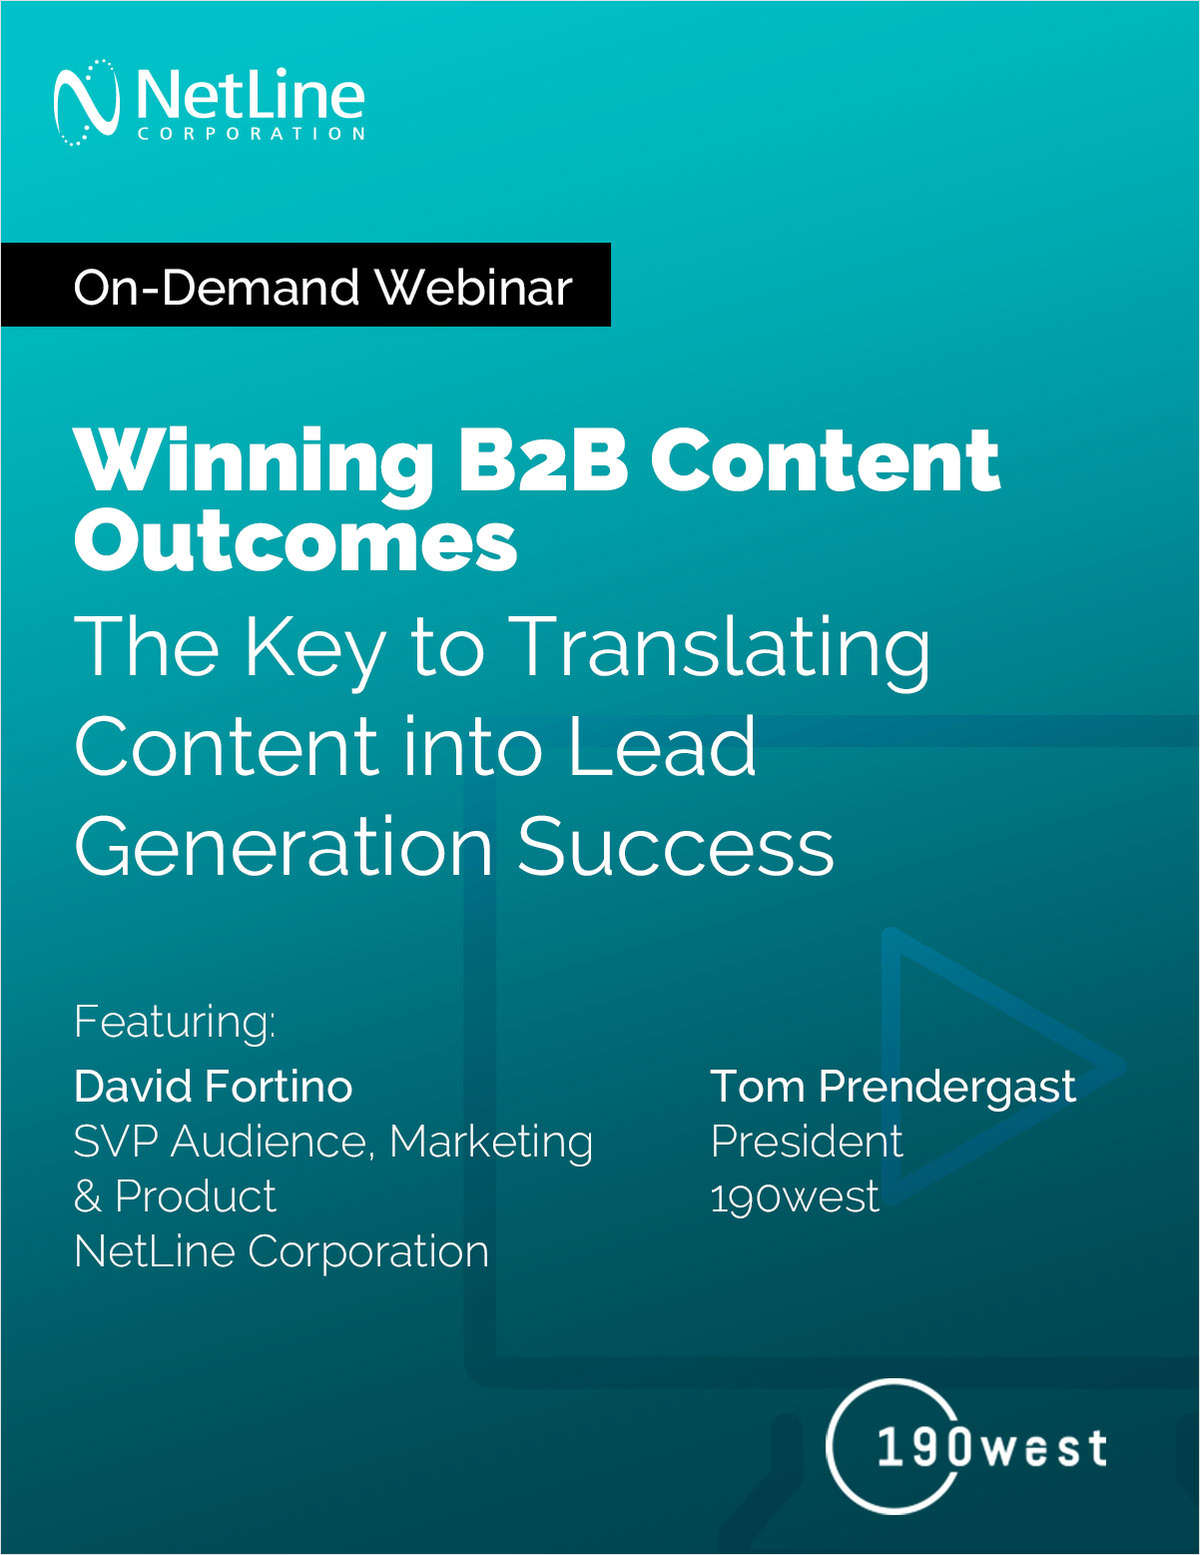 Winning B2B Content Outcomes: The Key to Translating Content into Lead Generation Success